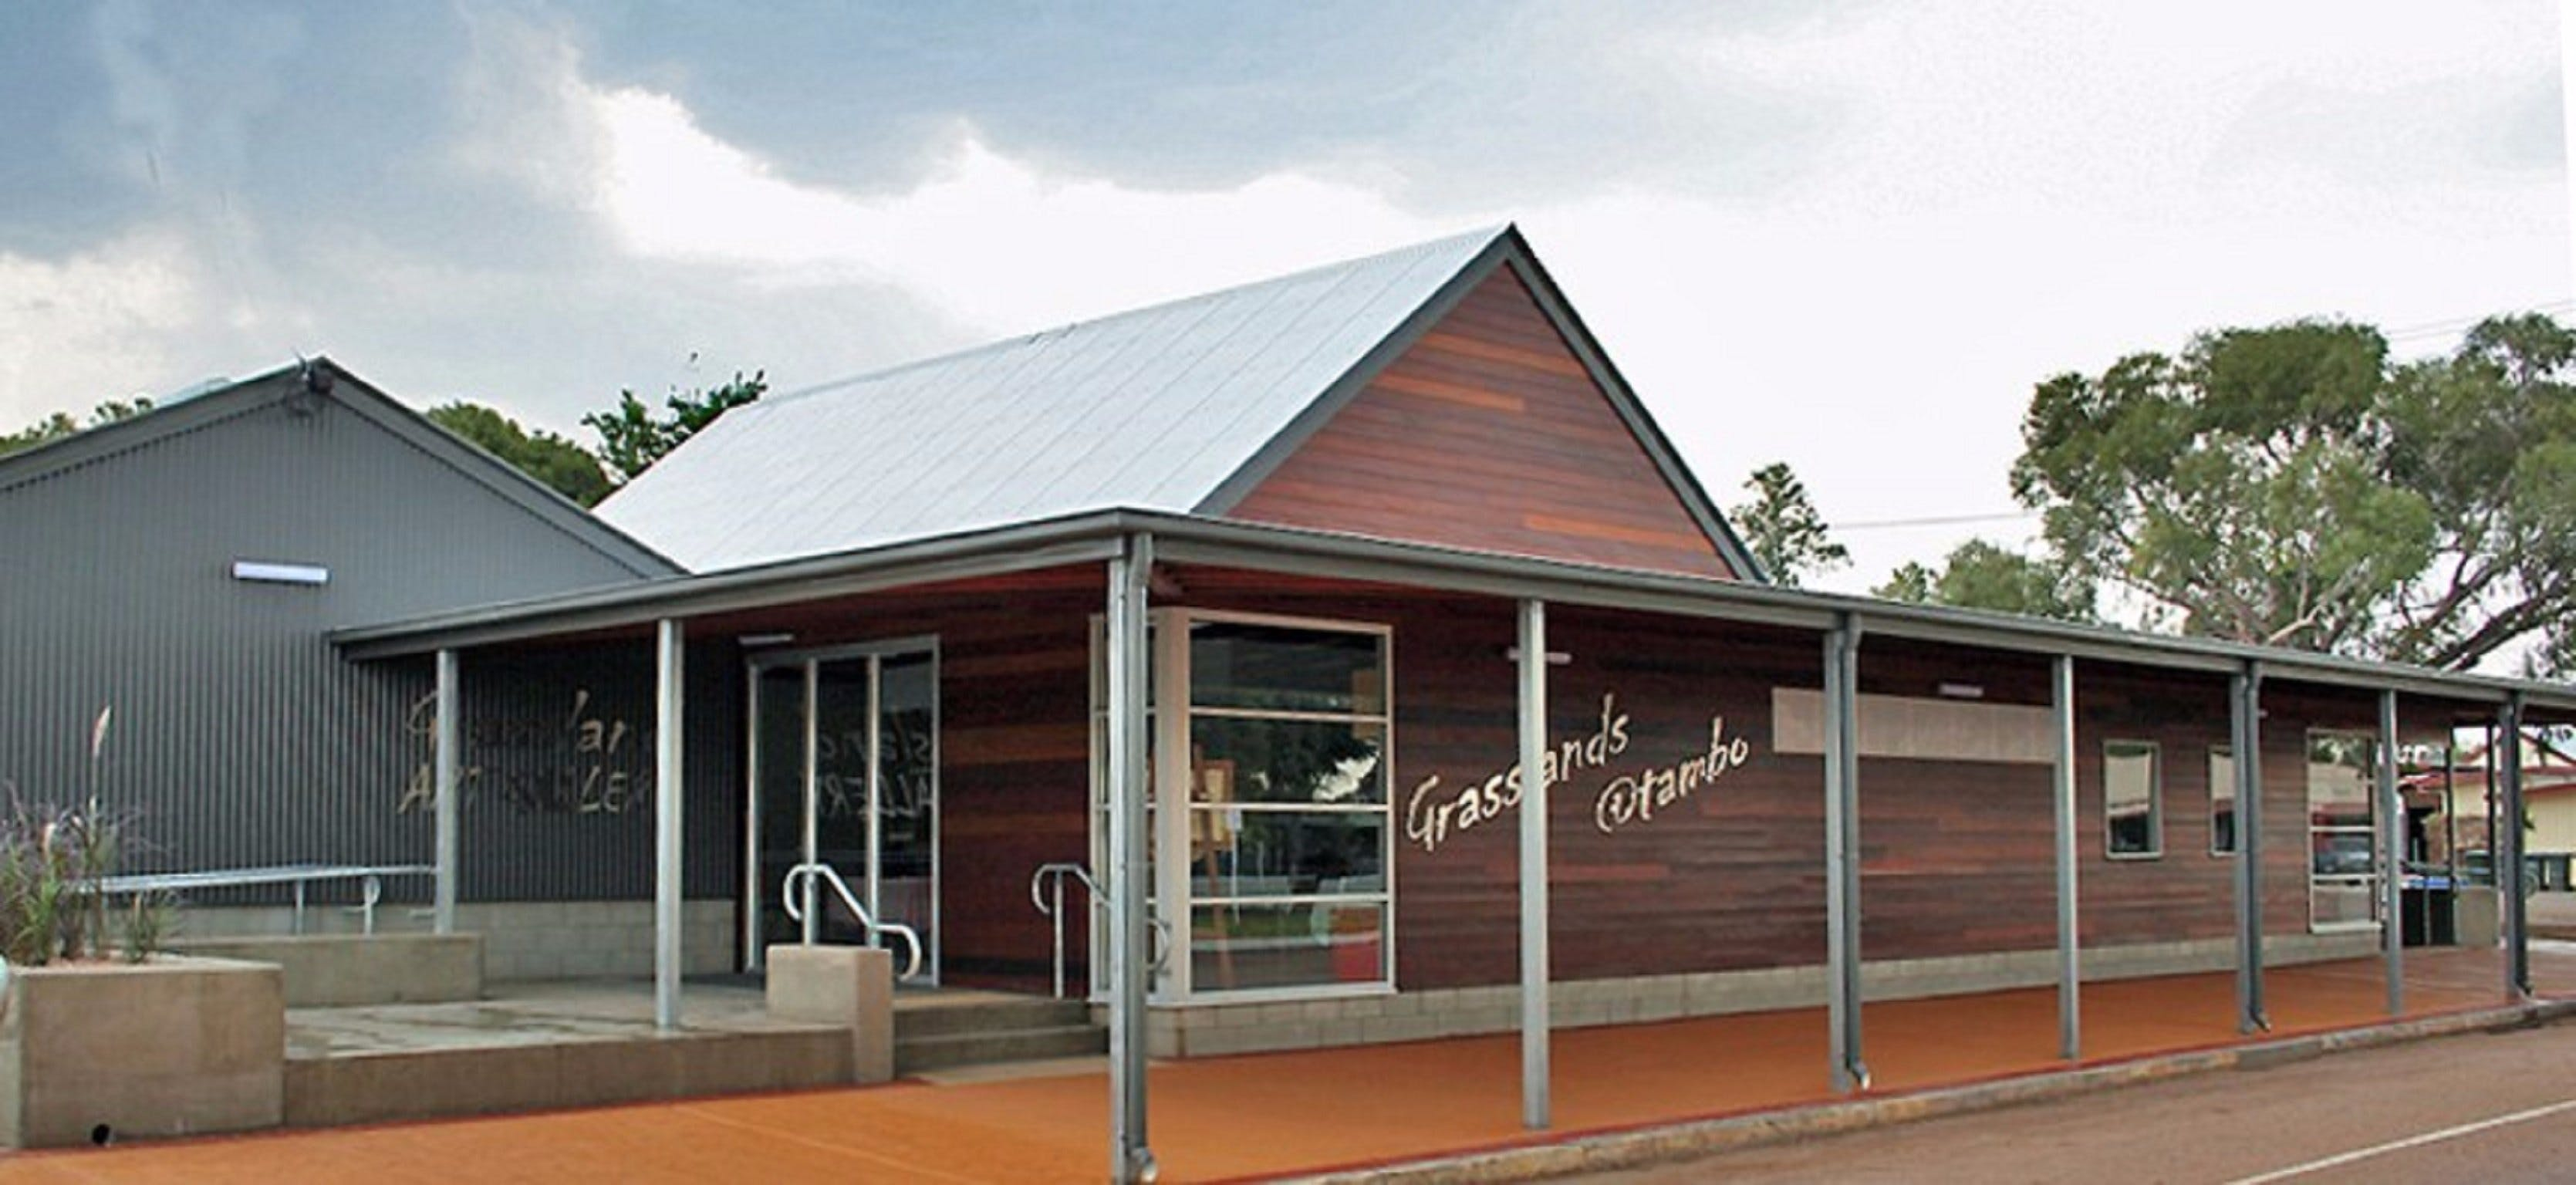 Grassland Art Gallery - Accommodation Perth